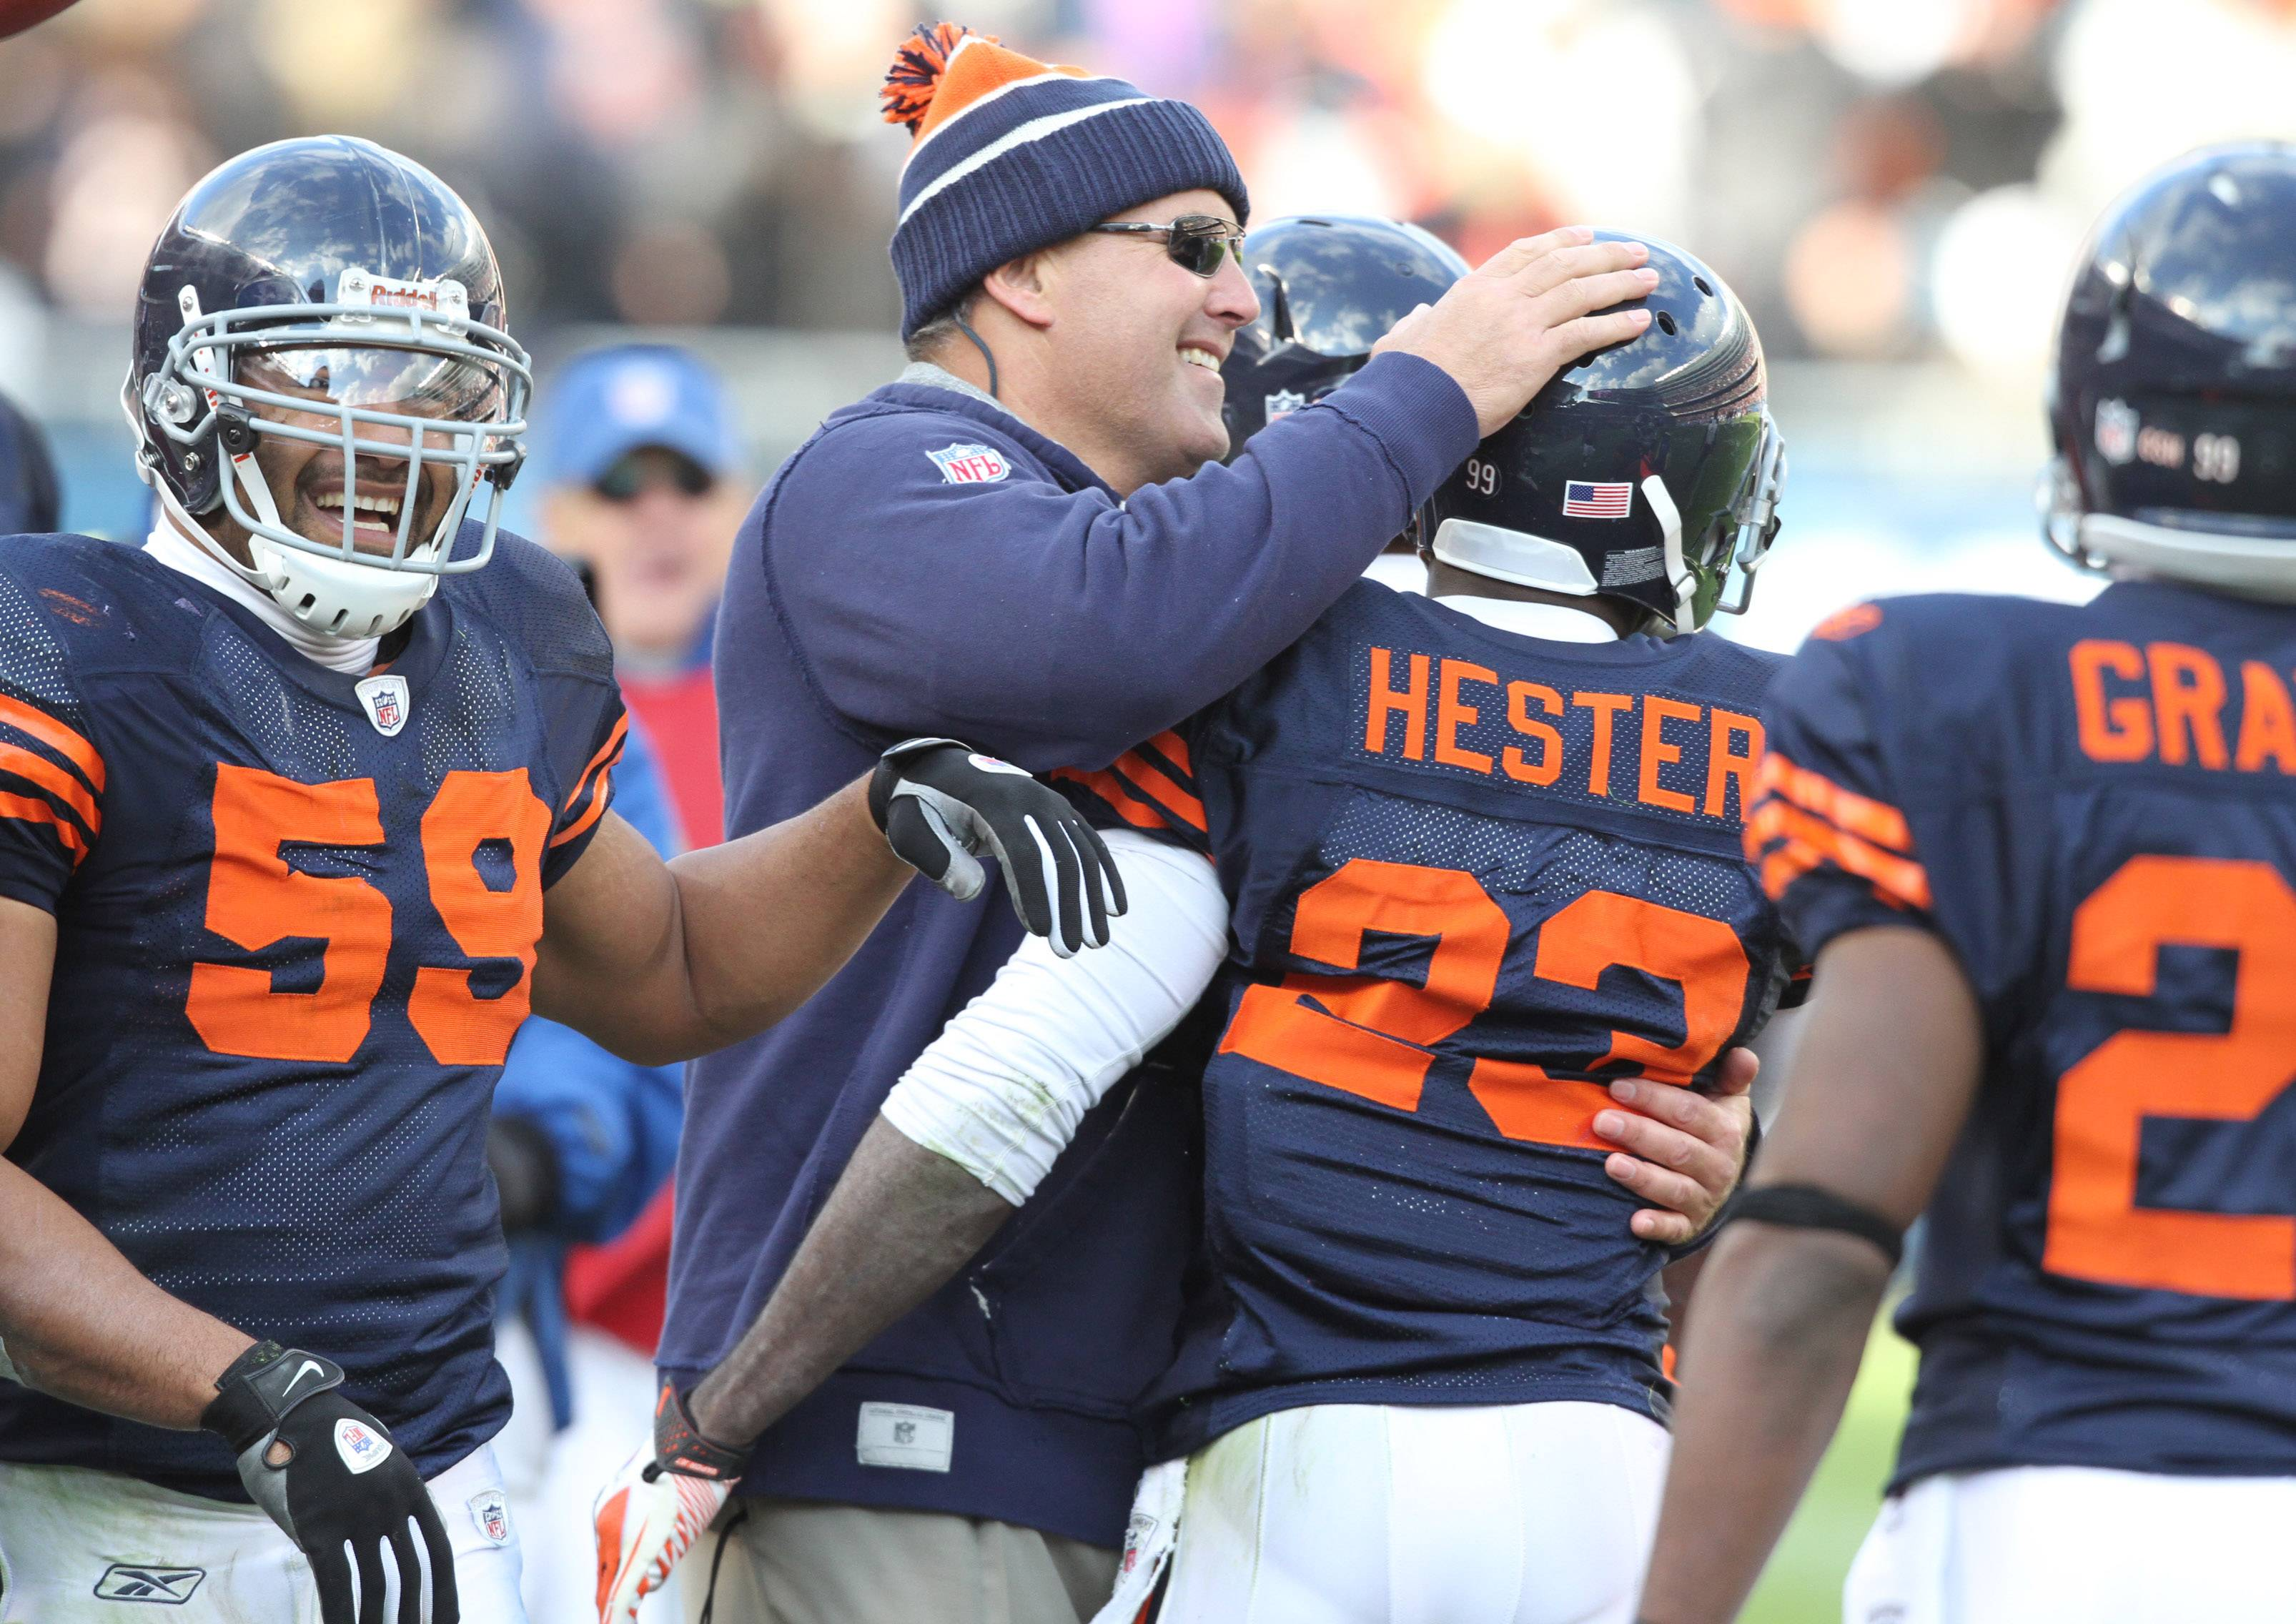 The Bears' Devin Hester gets a hand after picking up big yardage on punt return against Minnesota Vikings in the second half at Soldier Field in Chicago on Sunday, November 14. ¬